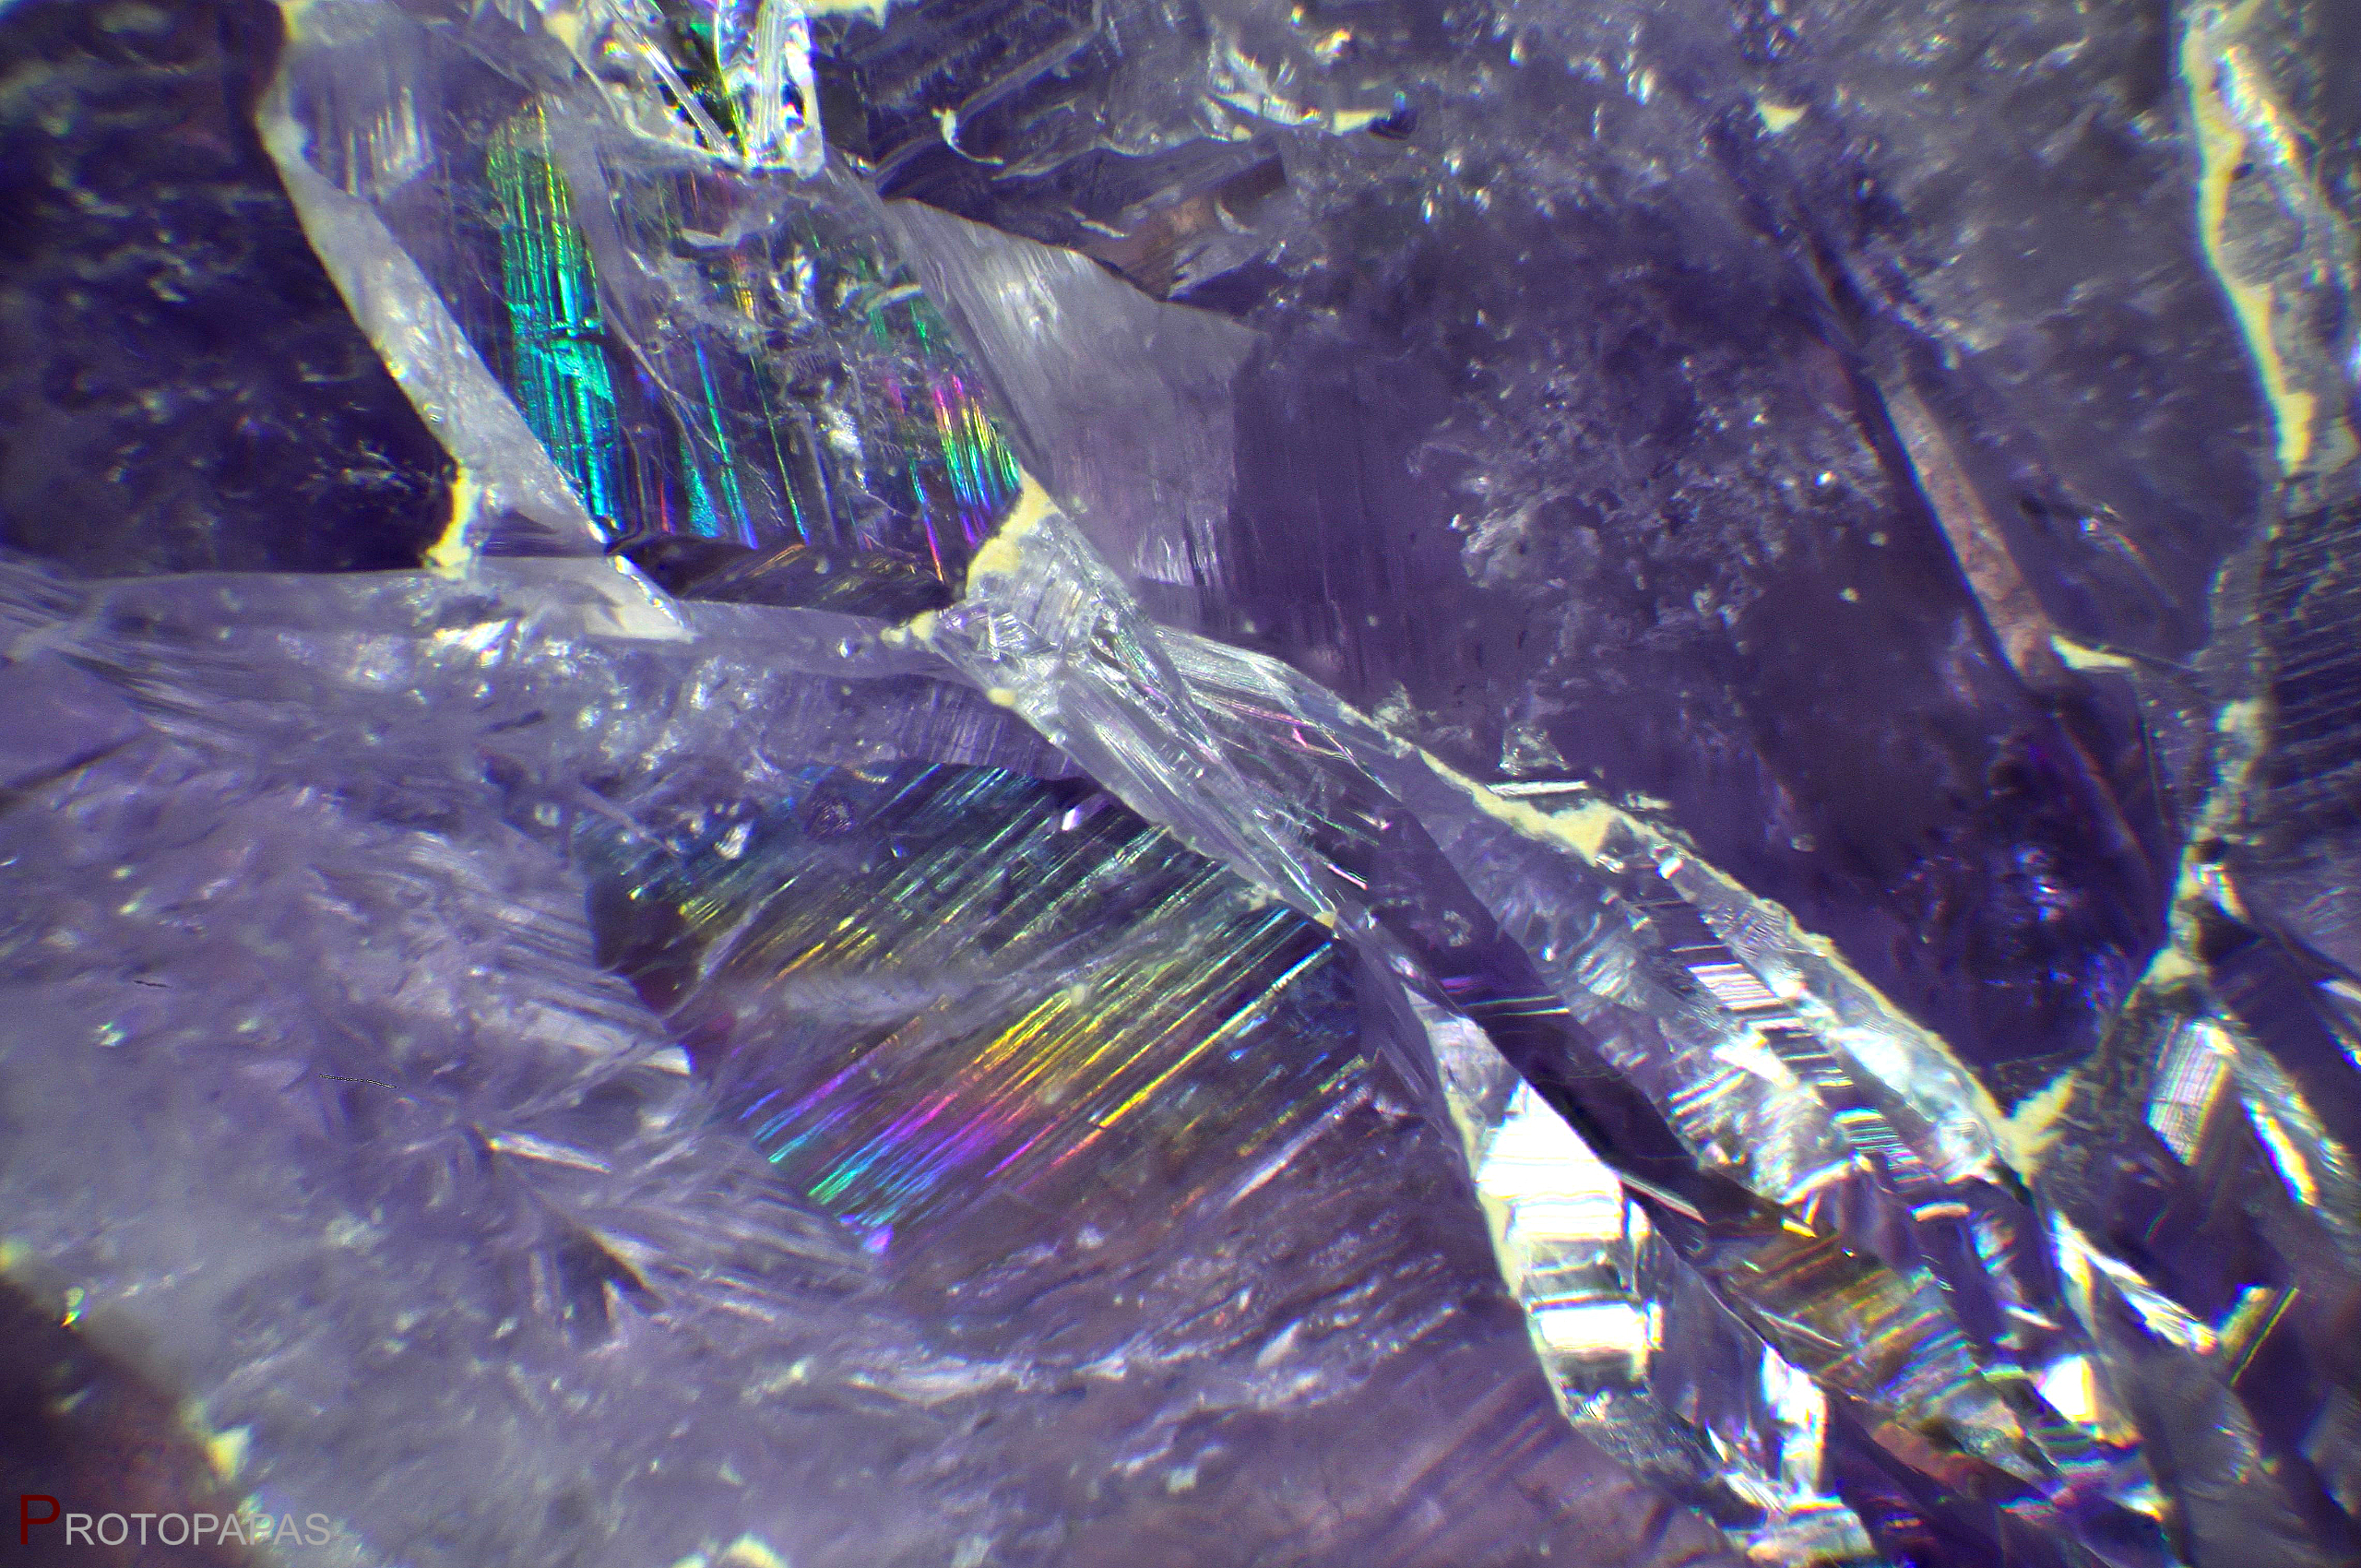 Iridescent planes in Amethyst from Brazil